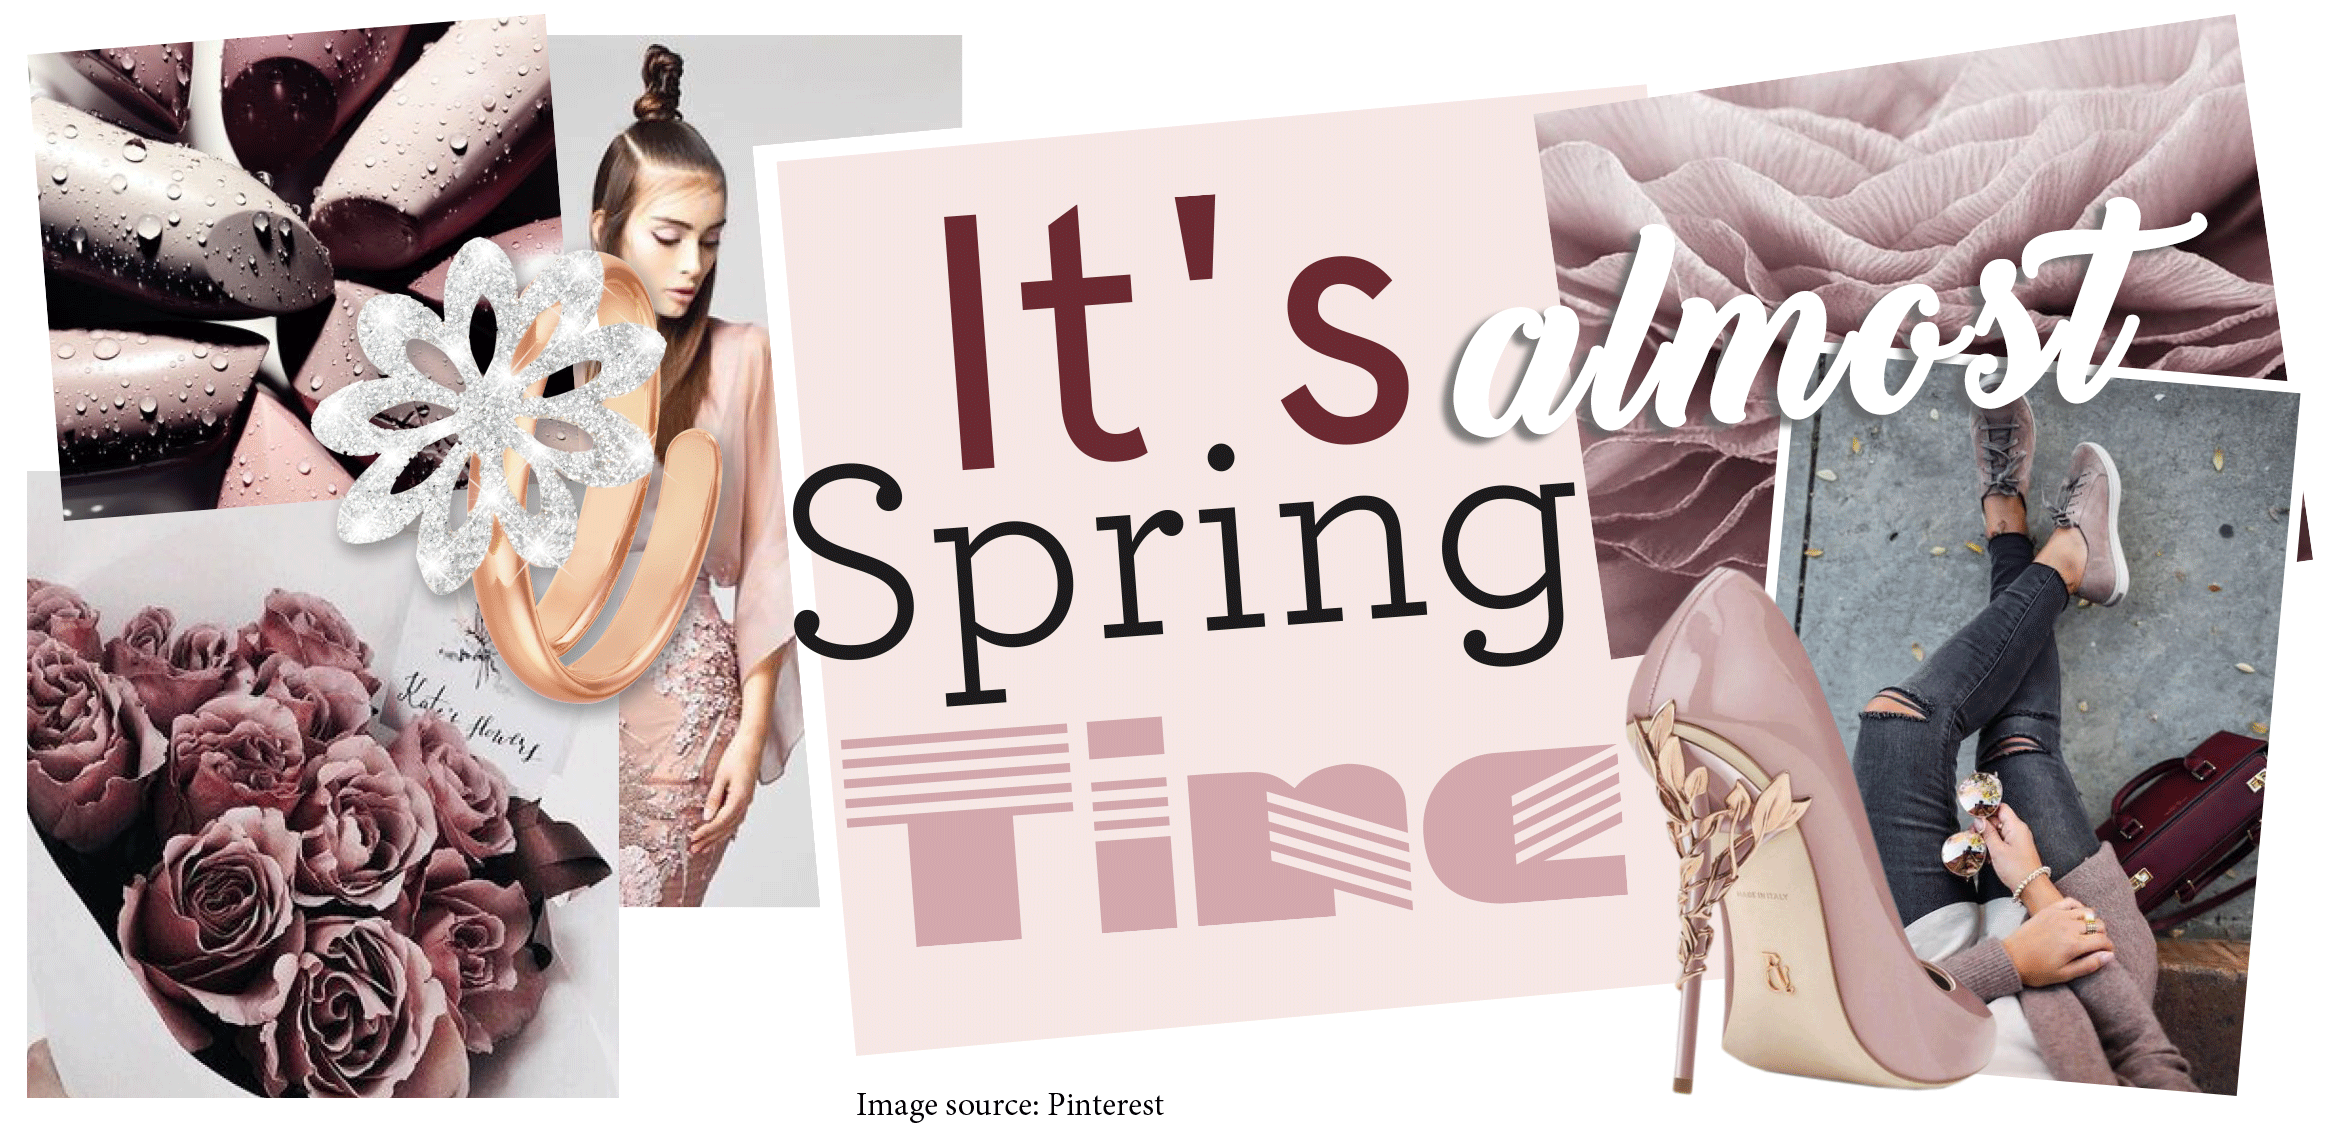 IT'S (ALMOST) SPRING TIME!